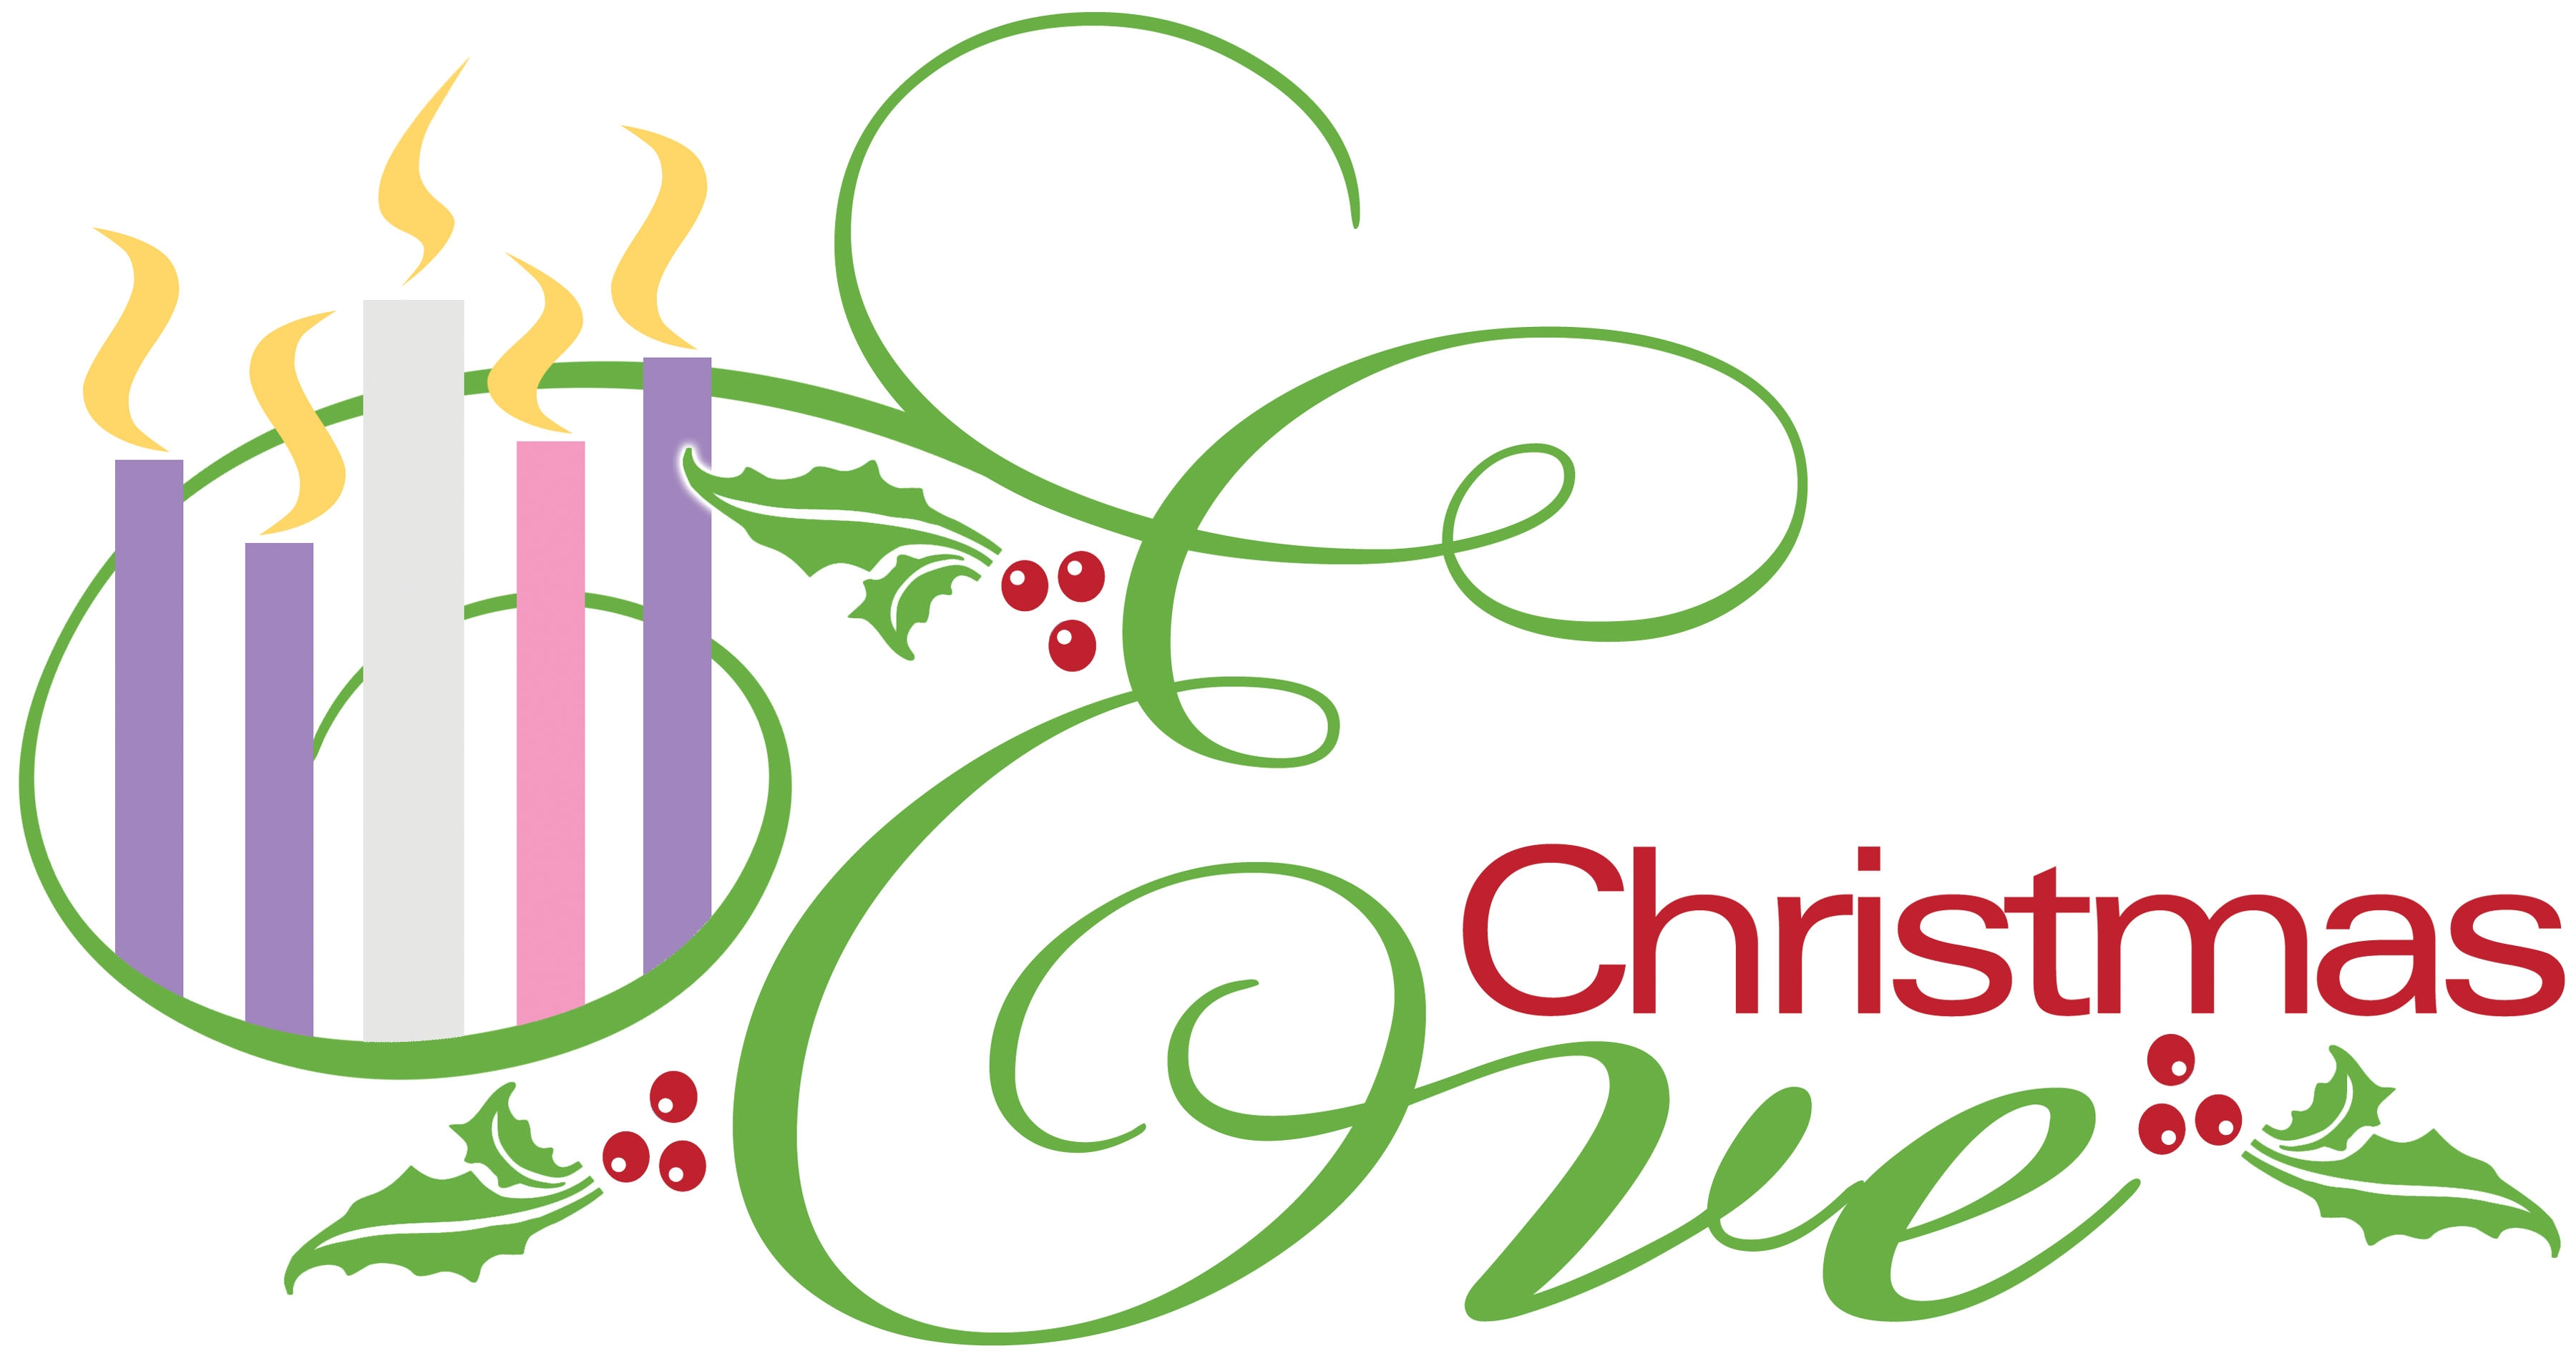 Christian clipart christmas. Best of gallery digital